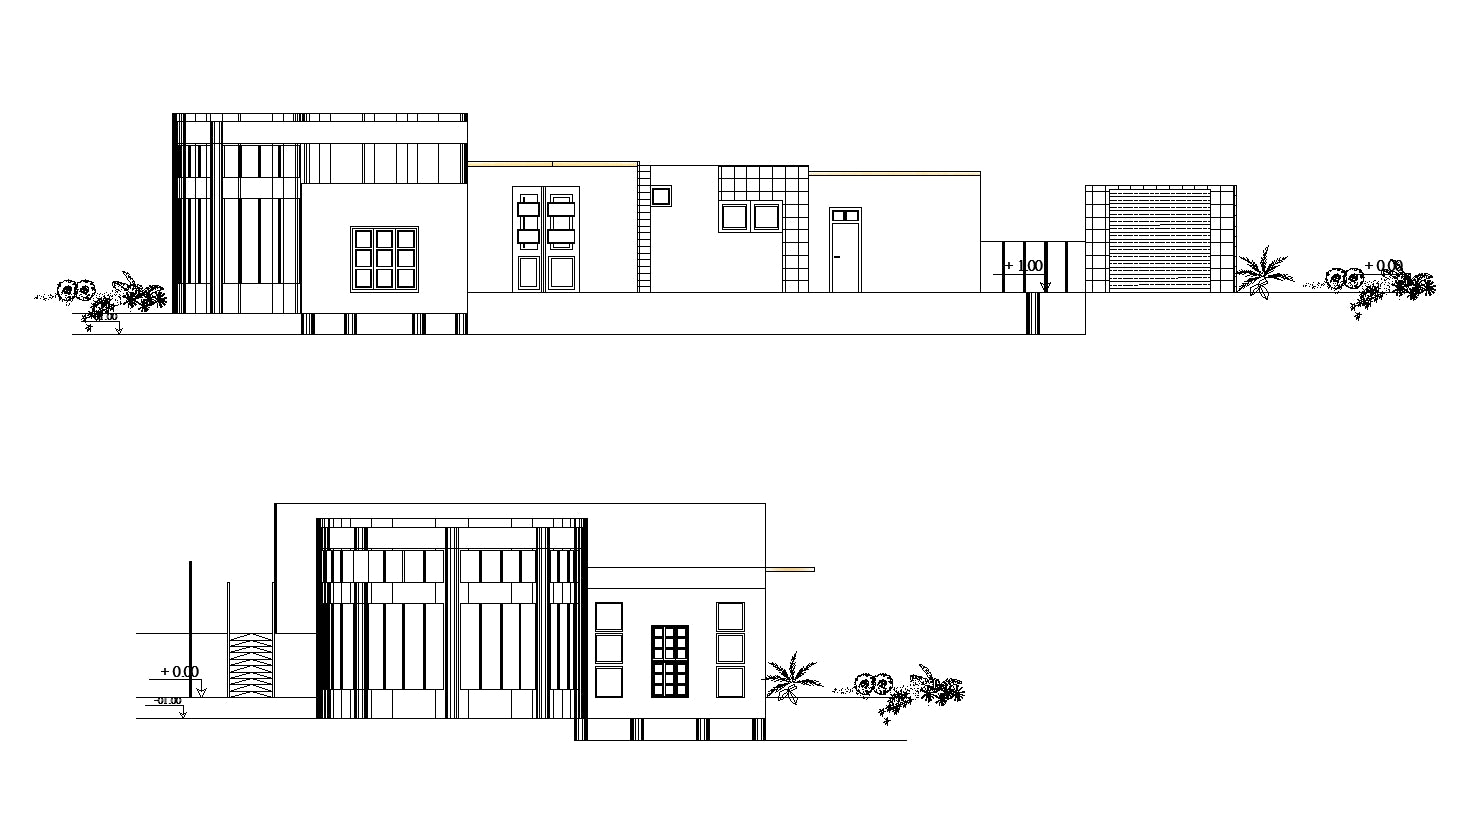 【Famous Architecture Project】Villa inspired from Richard Meier's house-Architectural CAD Drawings